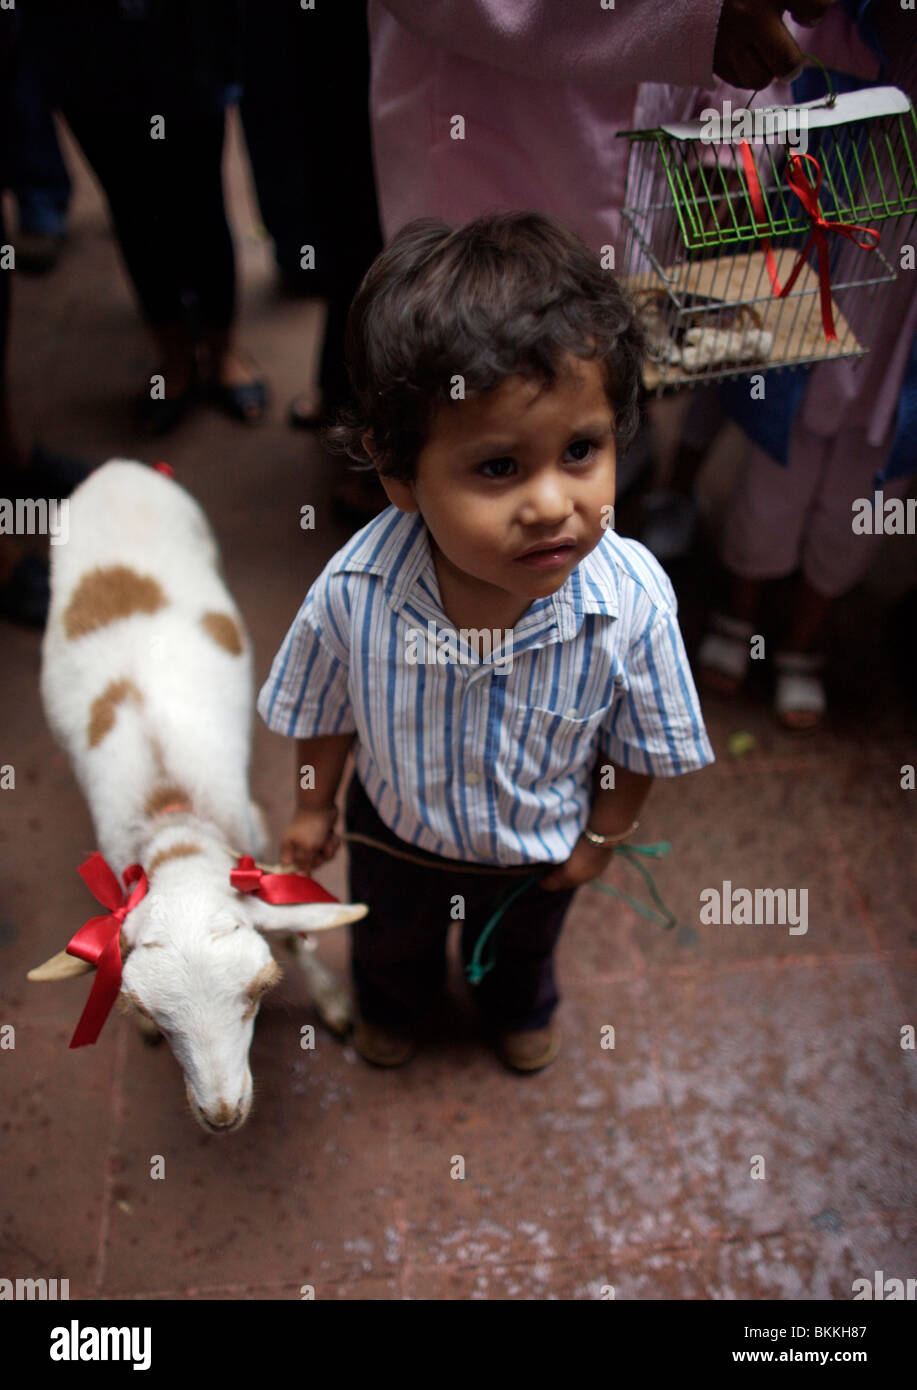 A boy holds his sheep by a leash as he attends the Blessing of the Animals celebration in Oaxaca, Mexico.Stock Photo